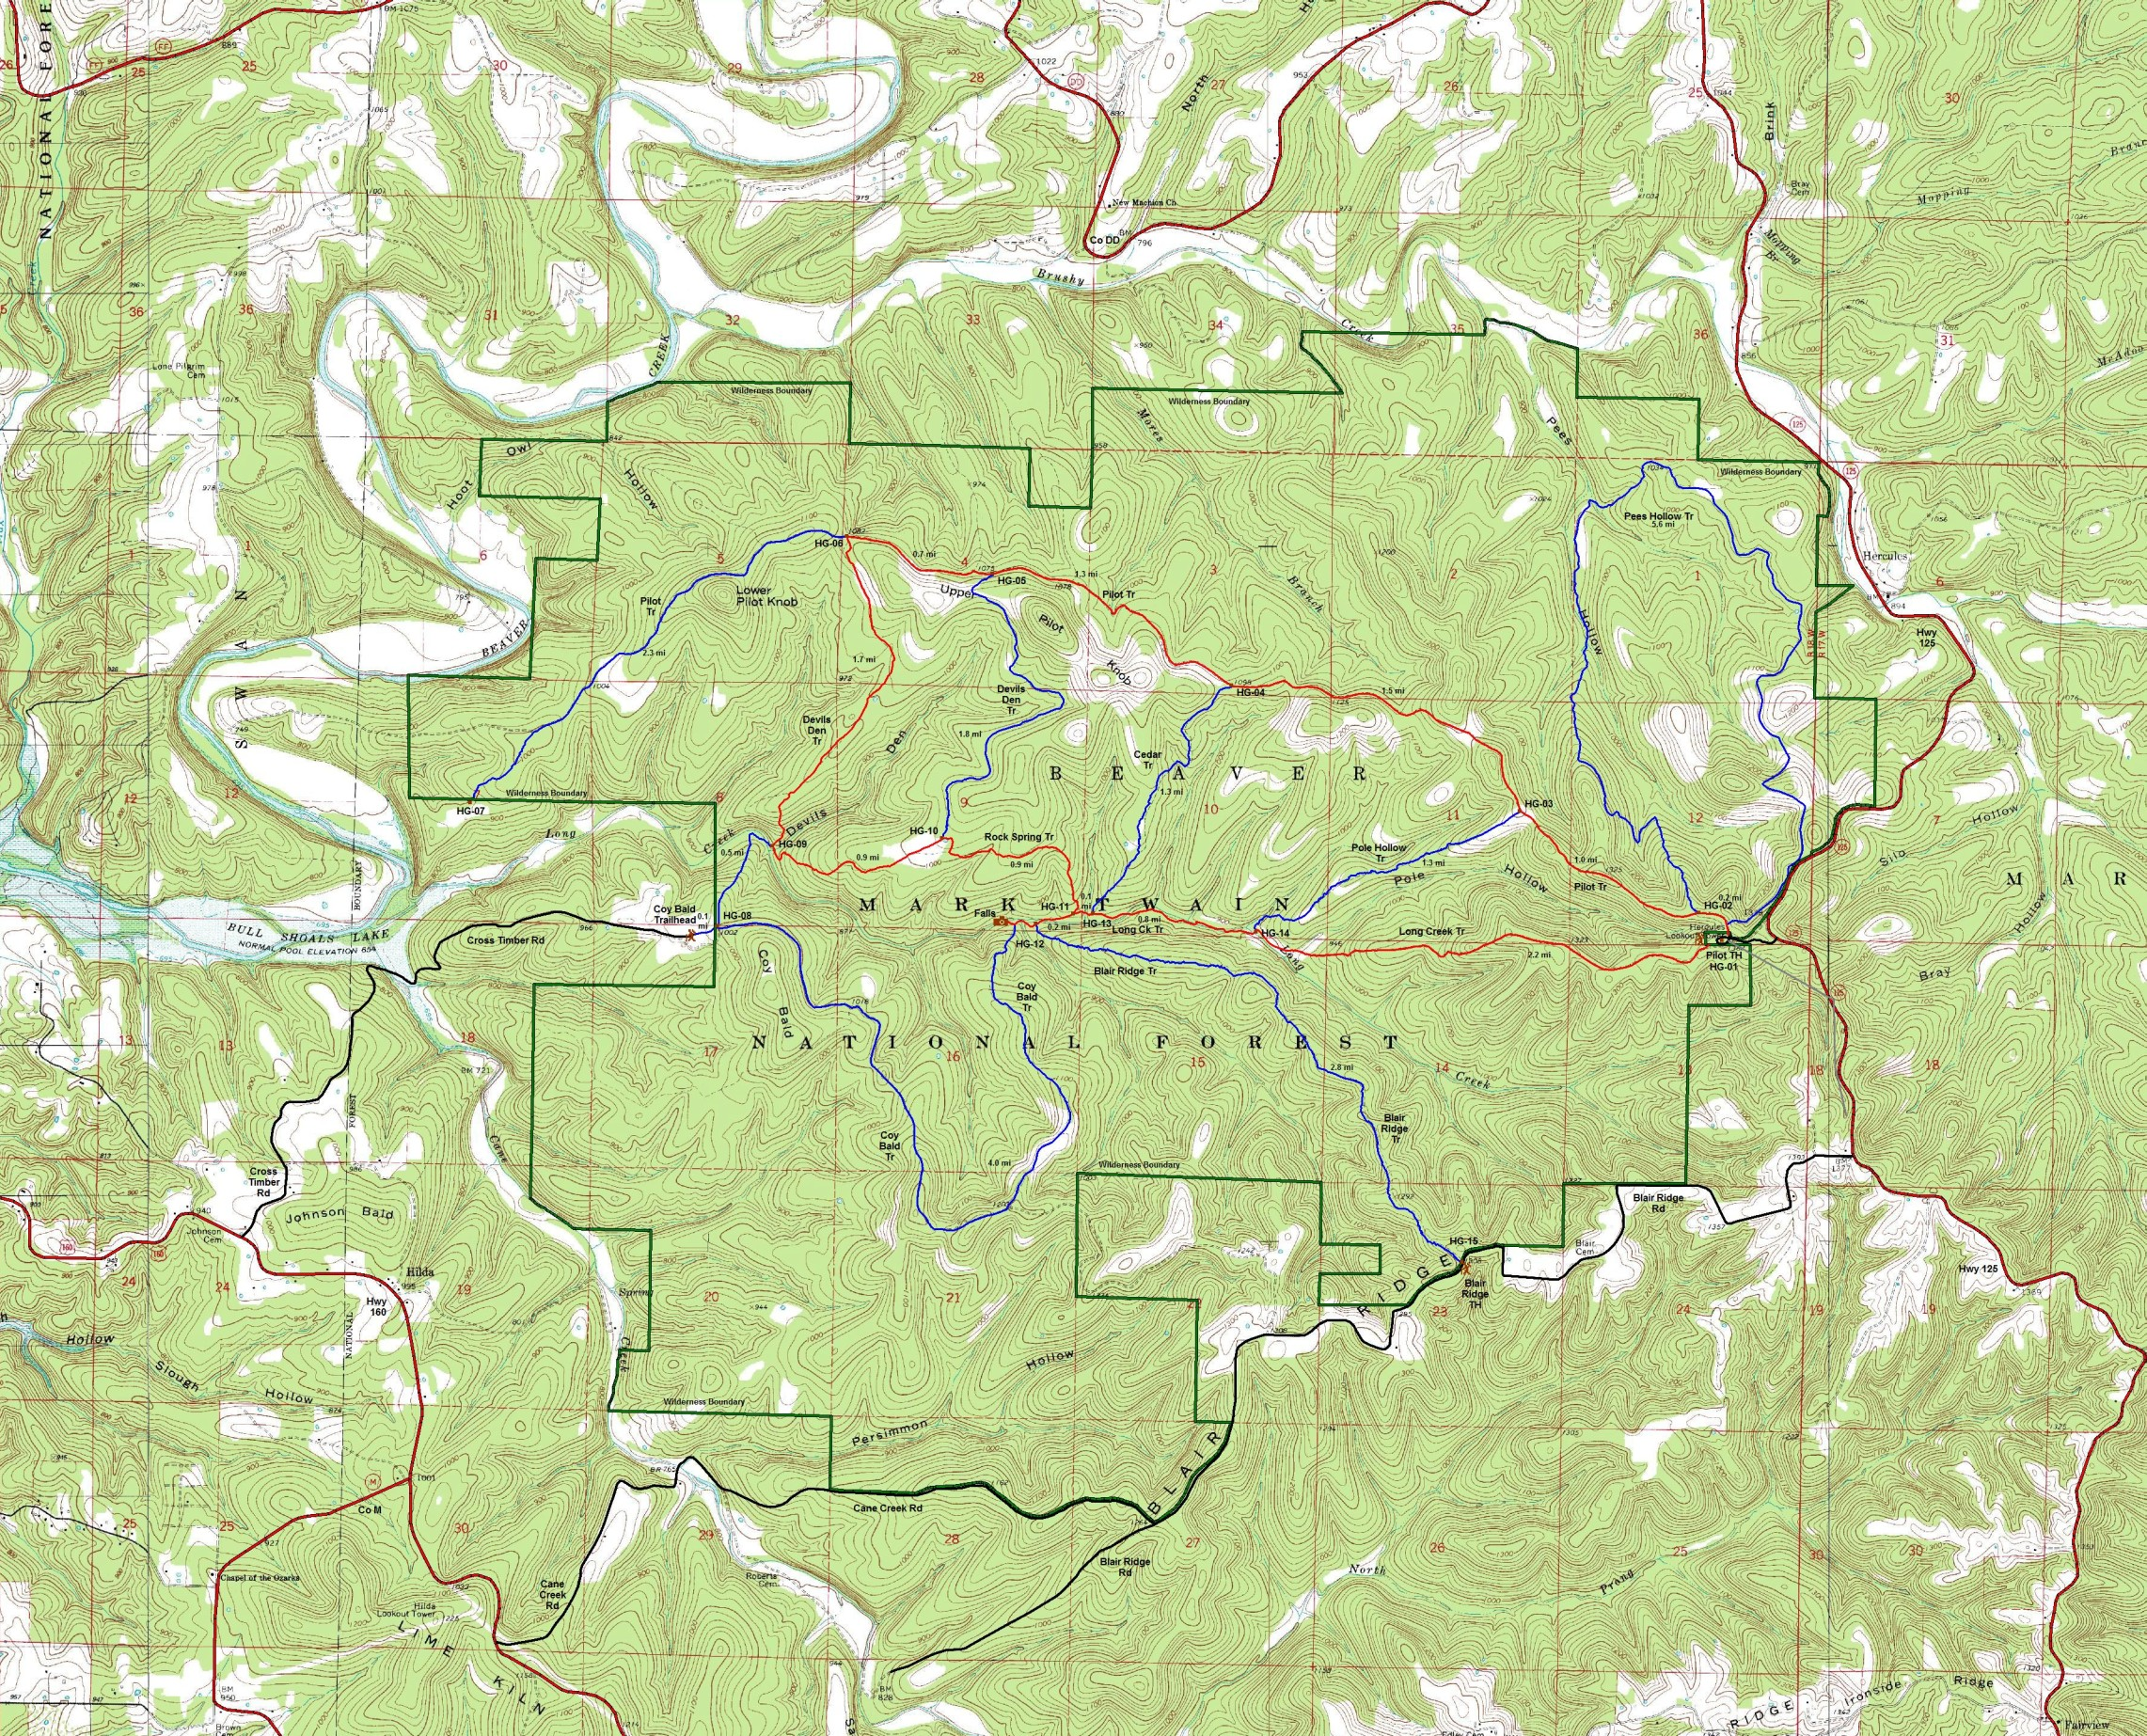 Hercules Gladed Wilderness area map